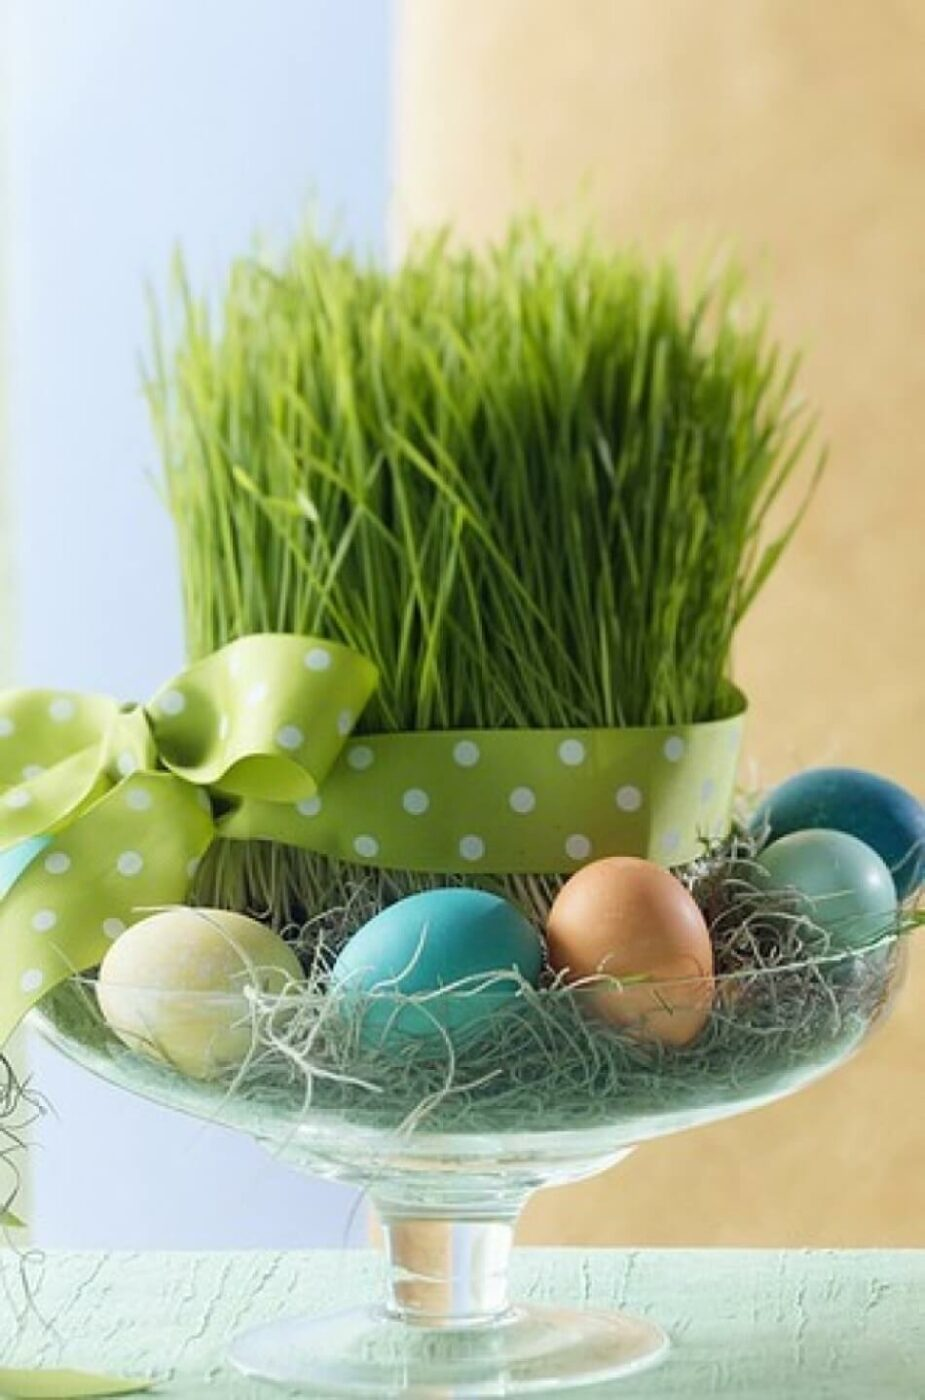 """The Grass Is Always Greener"" Easter Egg Dish"